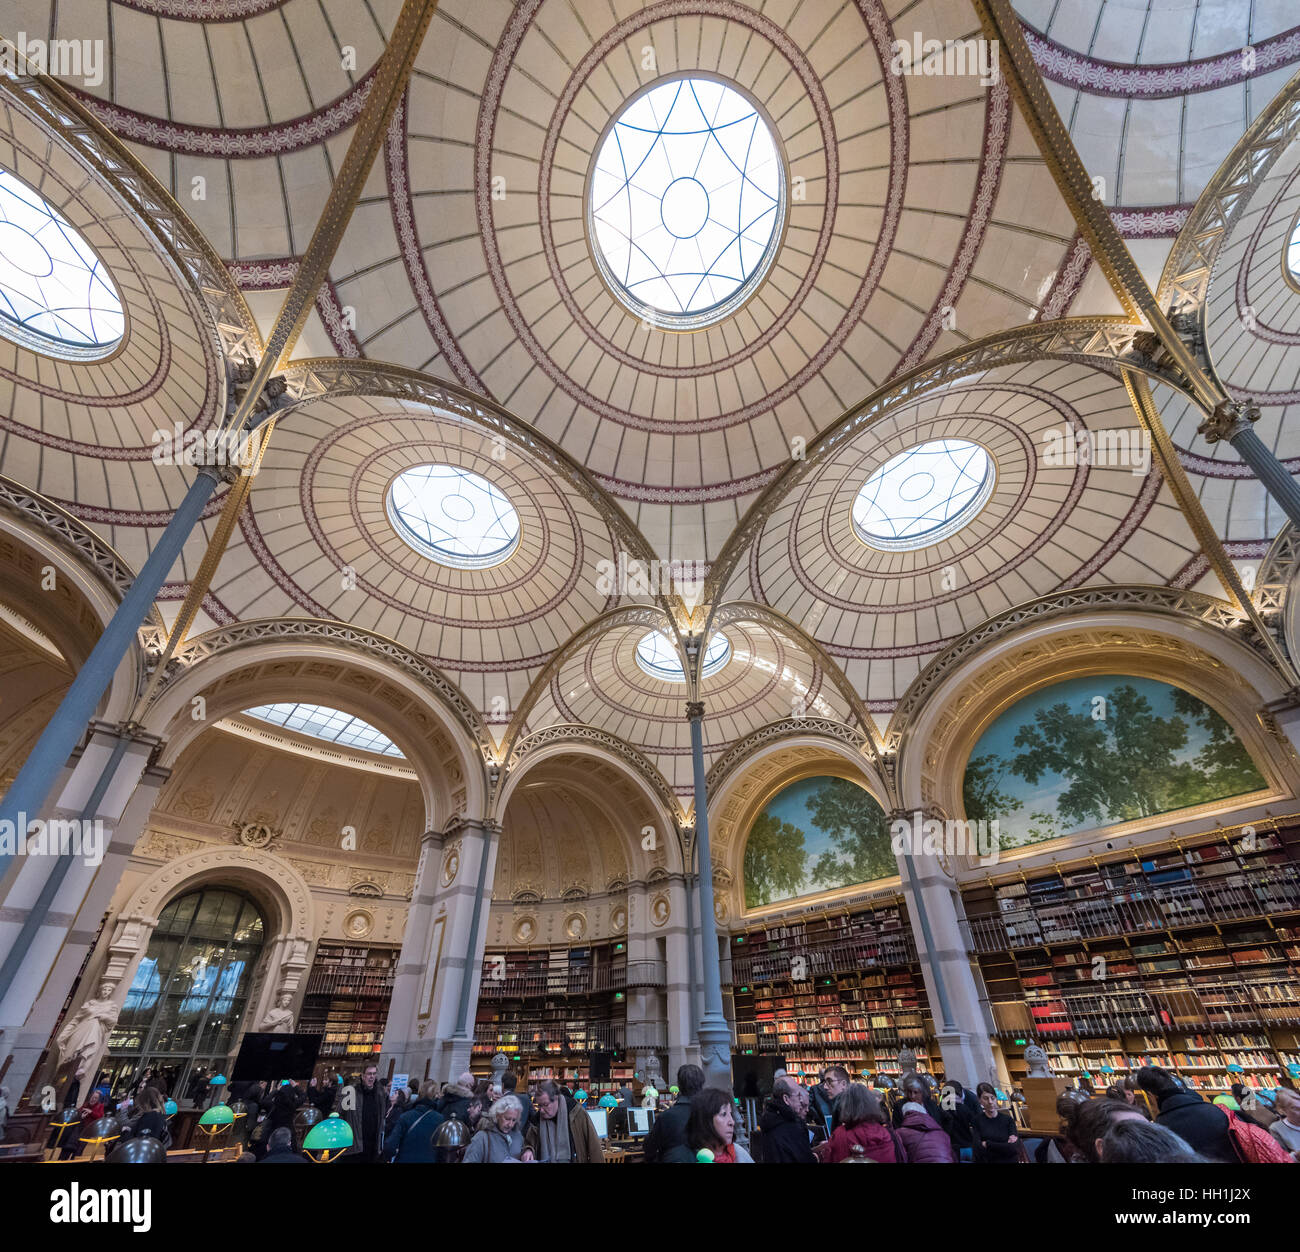 Paris France January 14th 2017 :  Famous Labrouste lecture room in the French National Library rue Vivienne in Paris - Stock Image